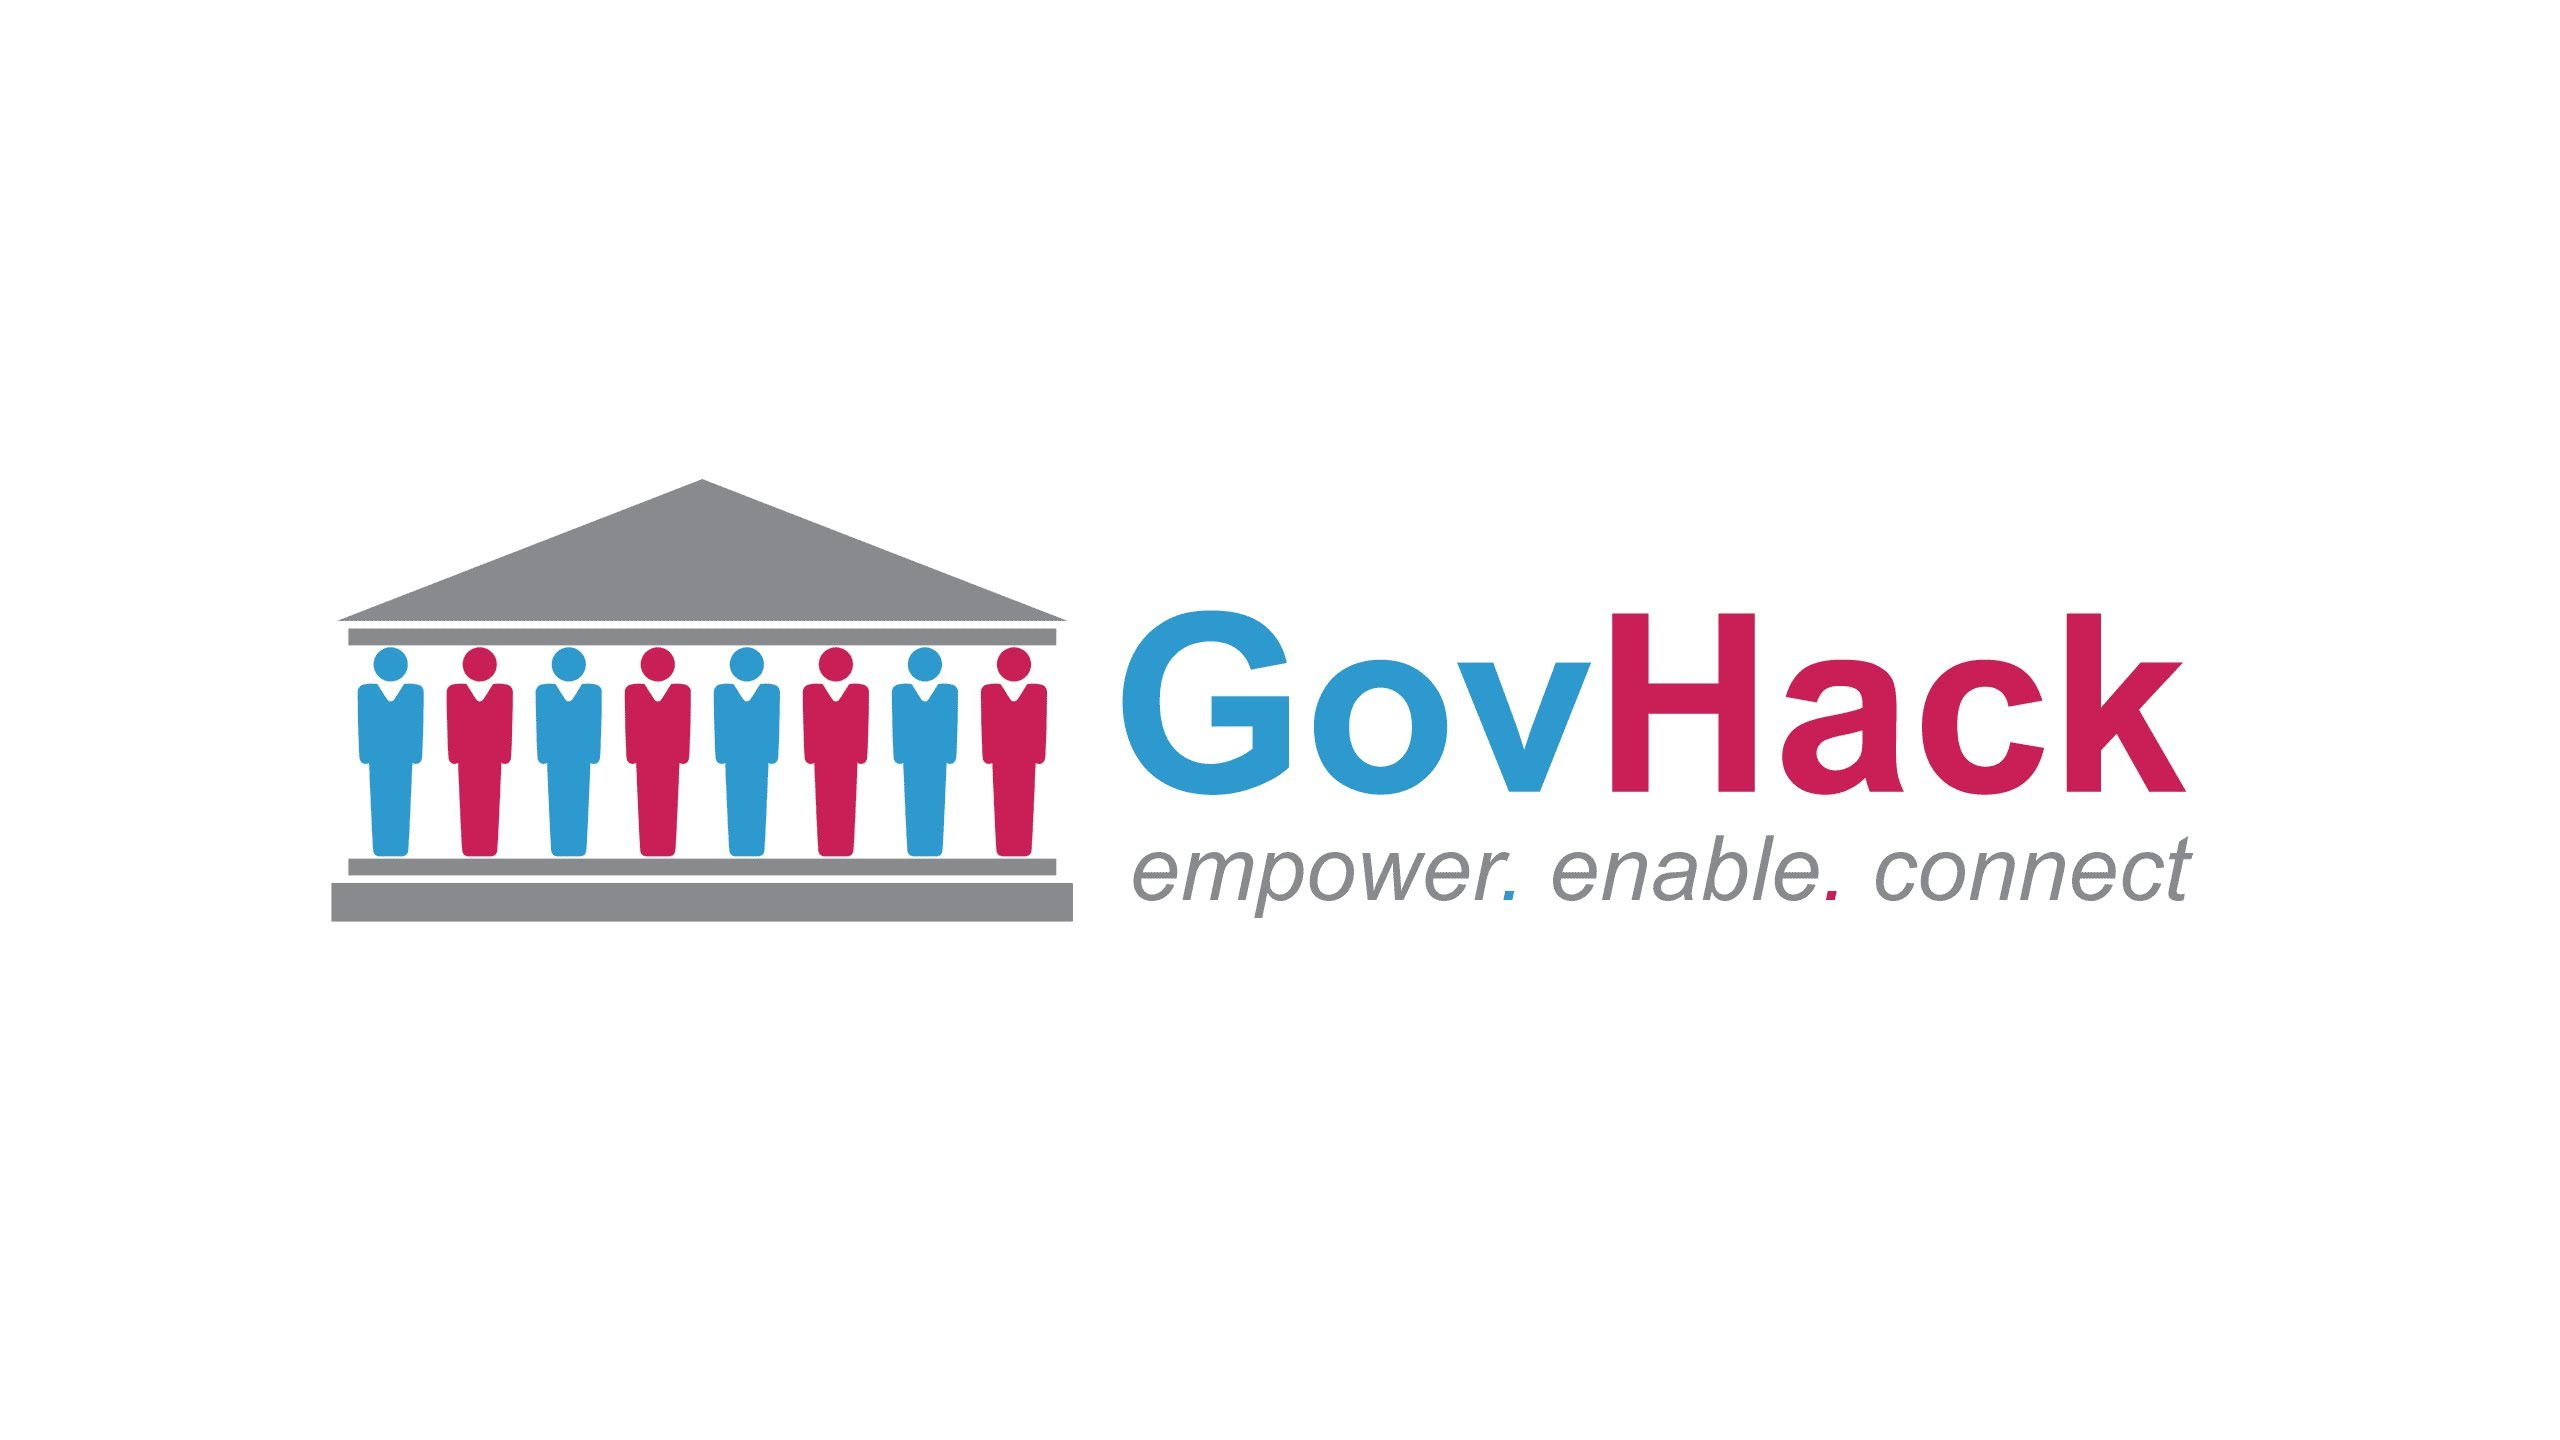 The power of government data on show: GovHack winners announced